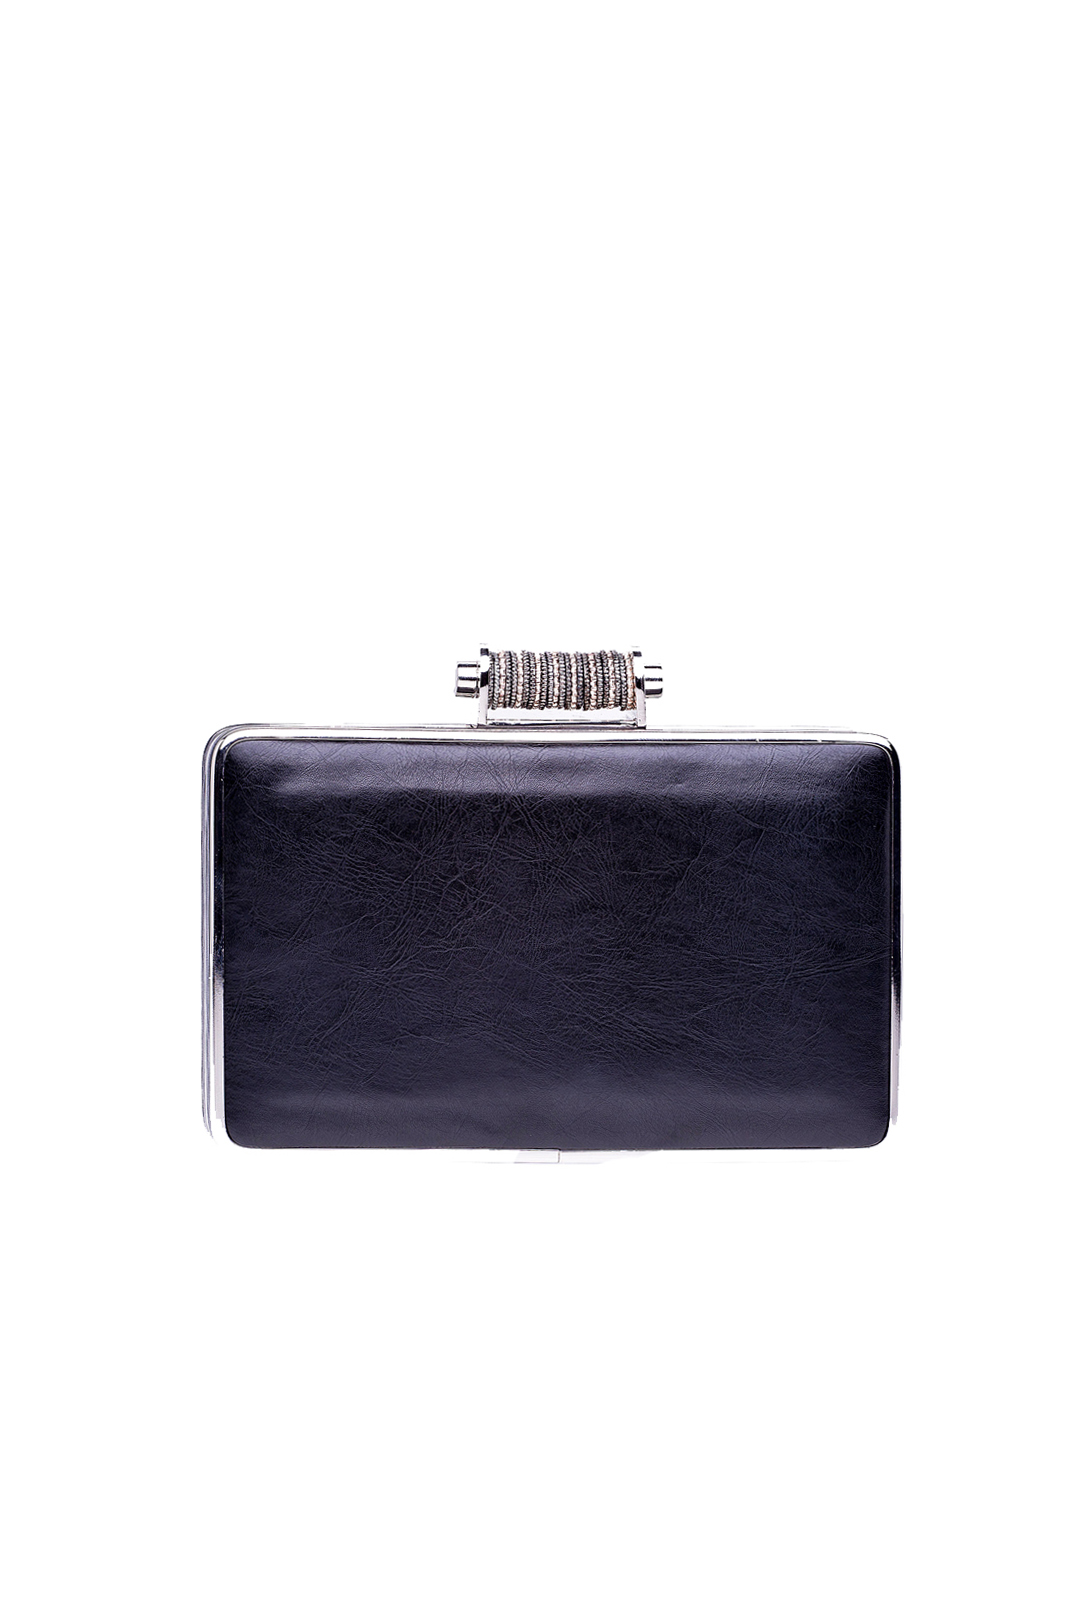 Black Leather Minaudiere